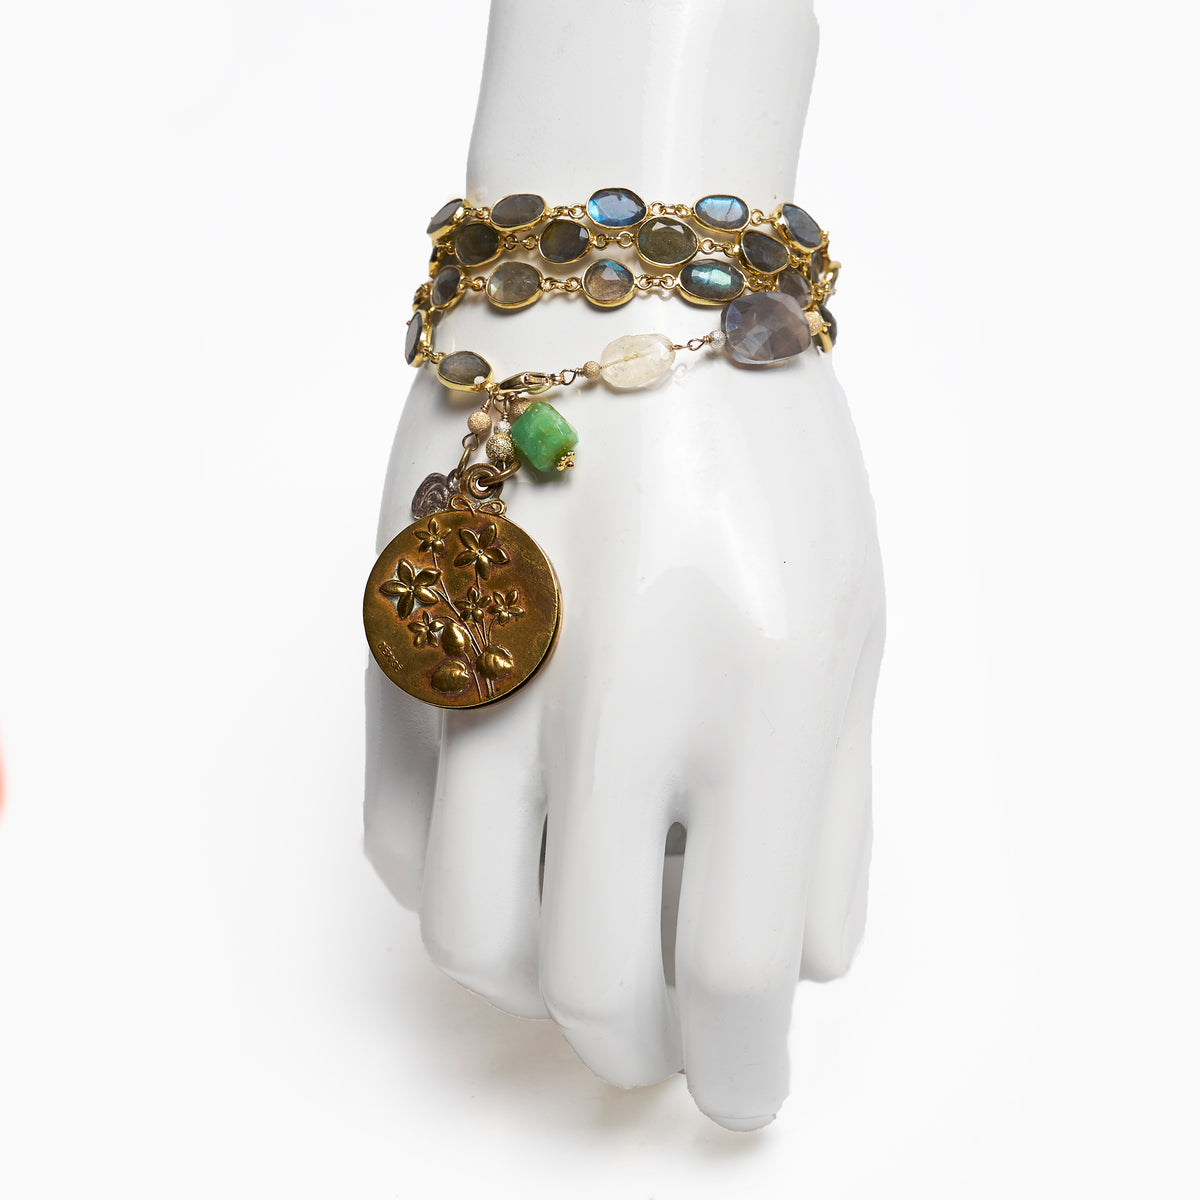 Peridot and Paris necklace/wrap bracelet